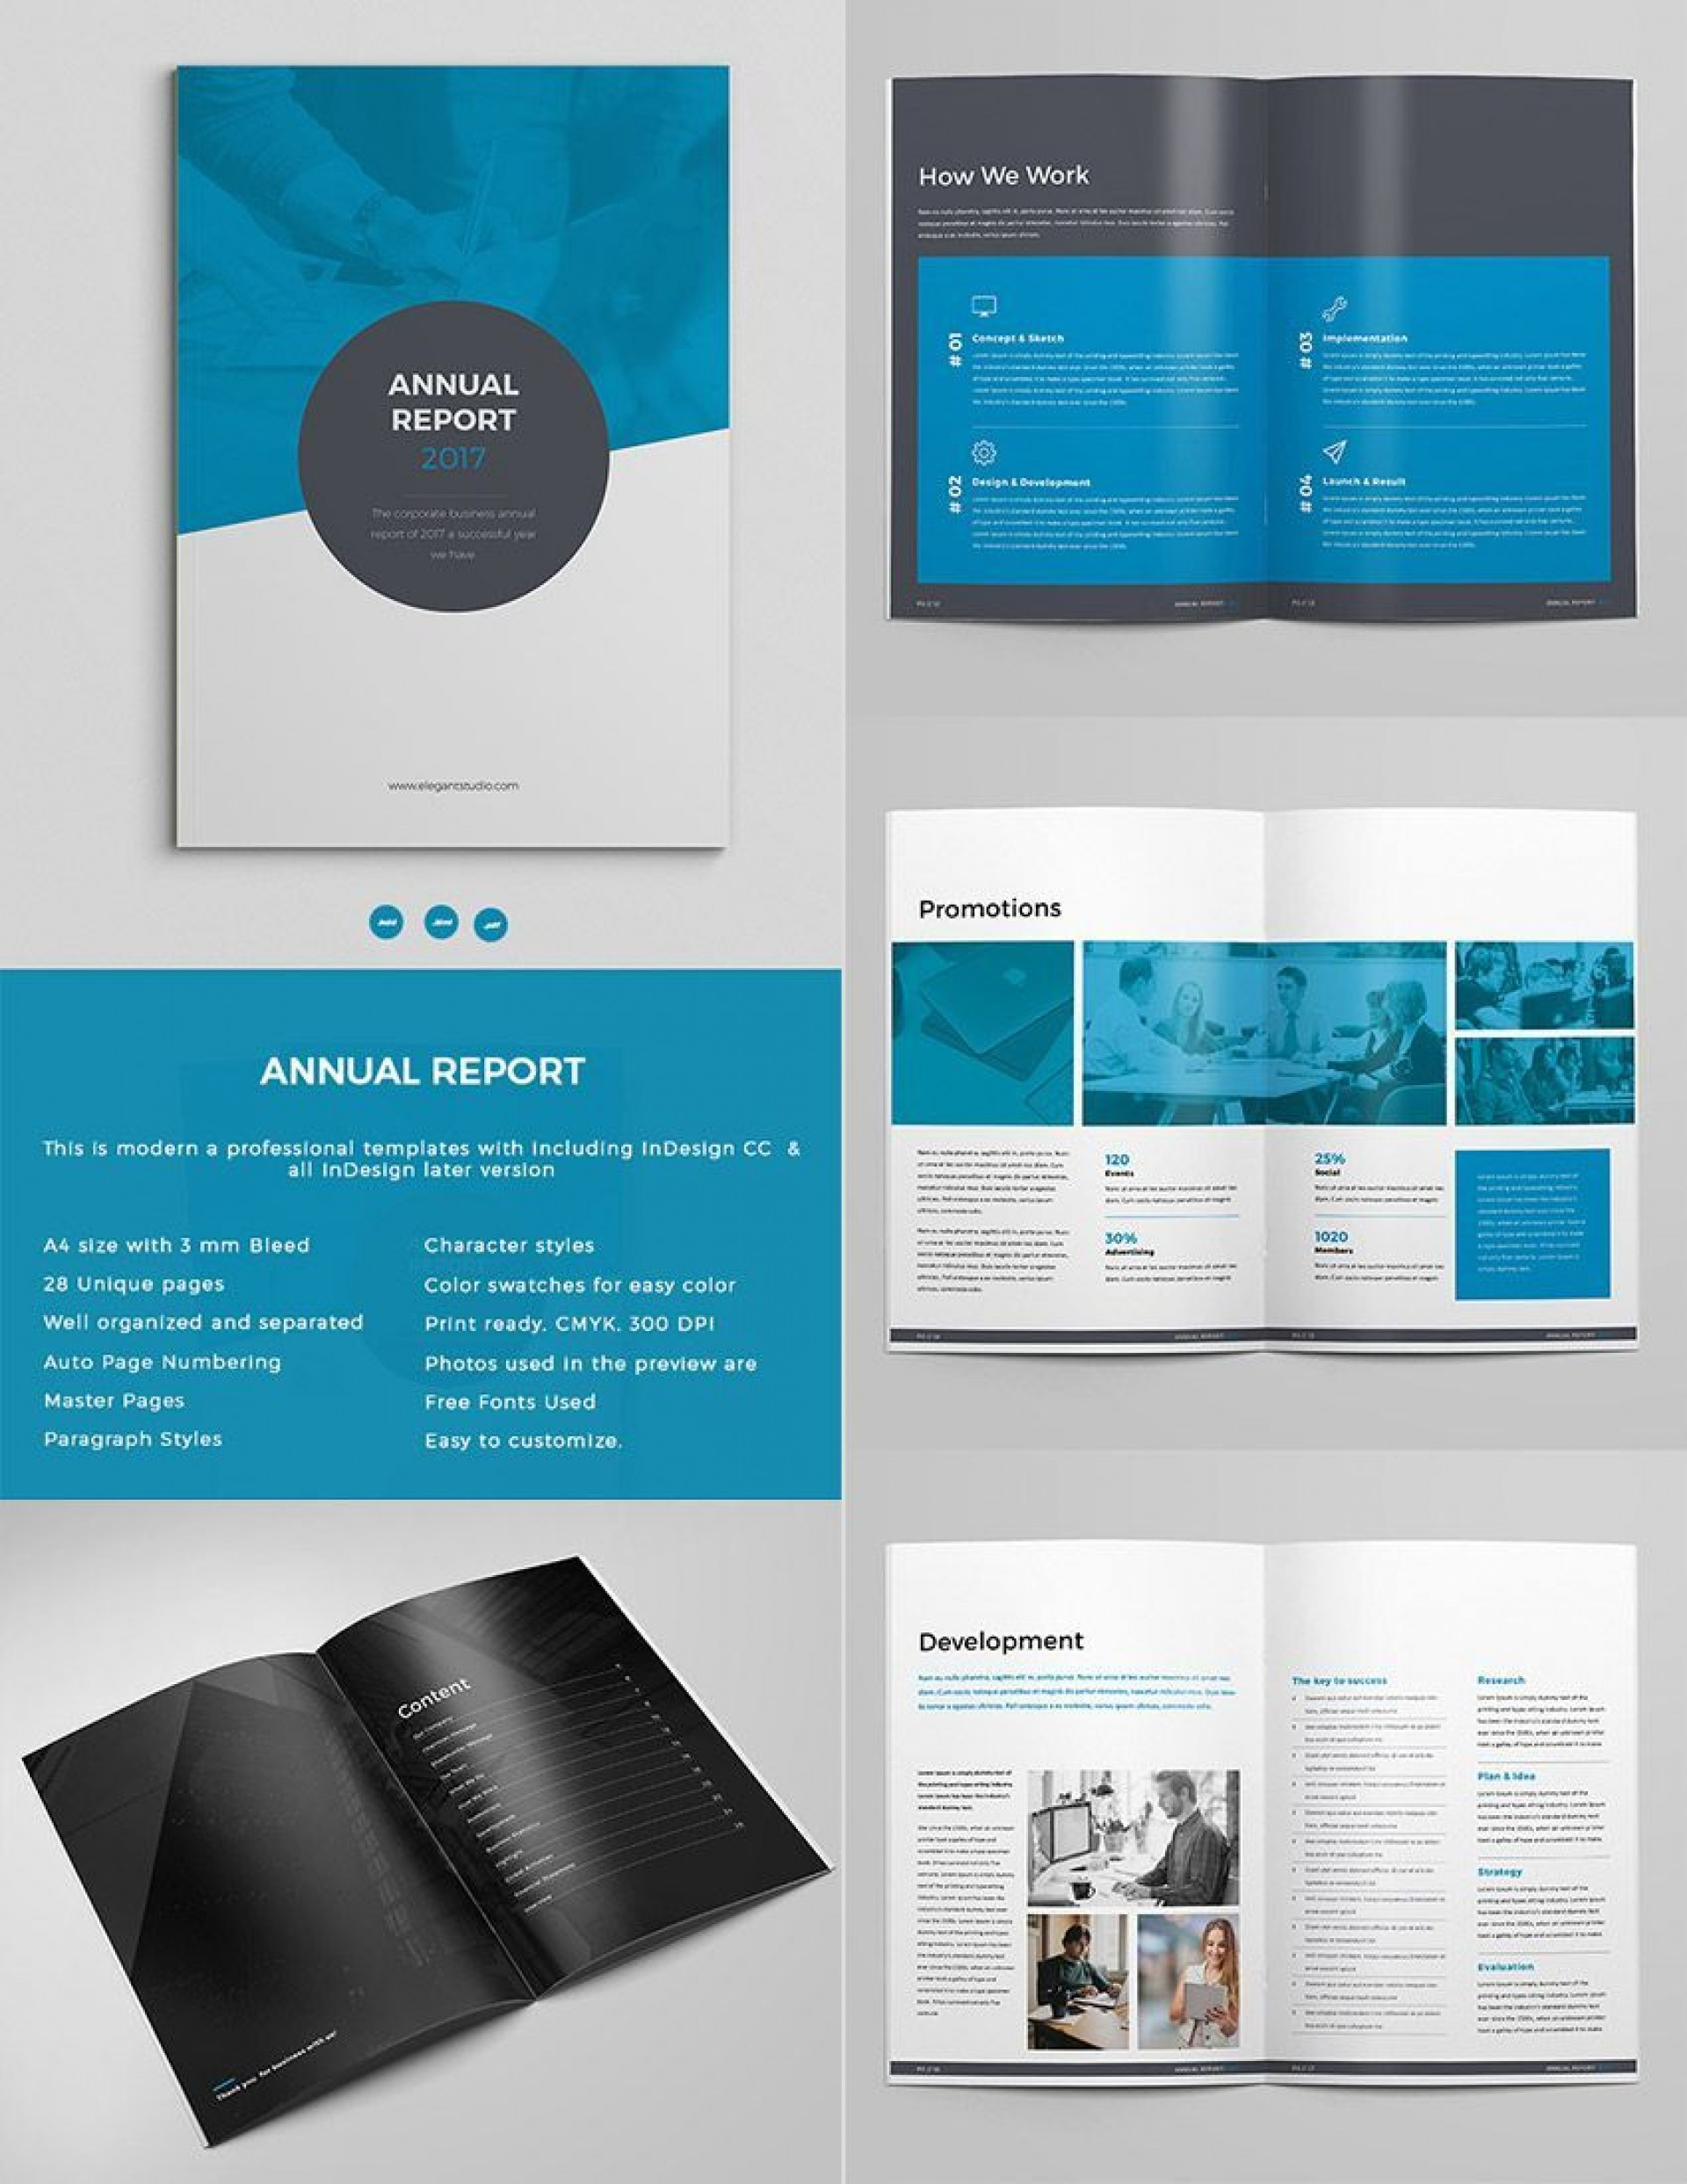 003 Simple Annual Report Design Template Indesign Picture  Free Download1920